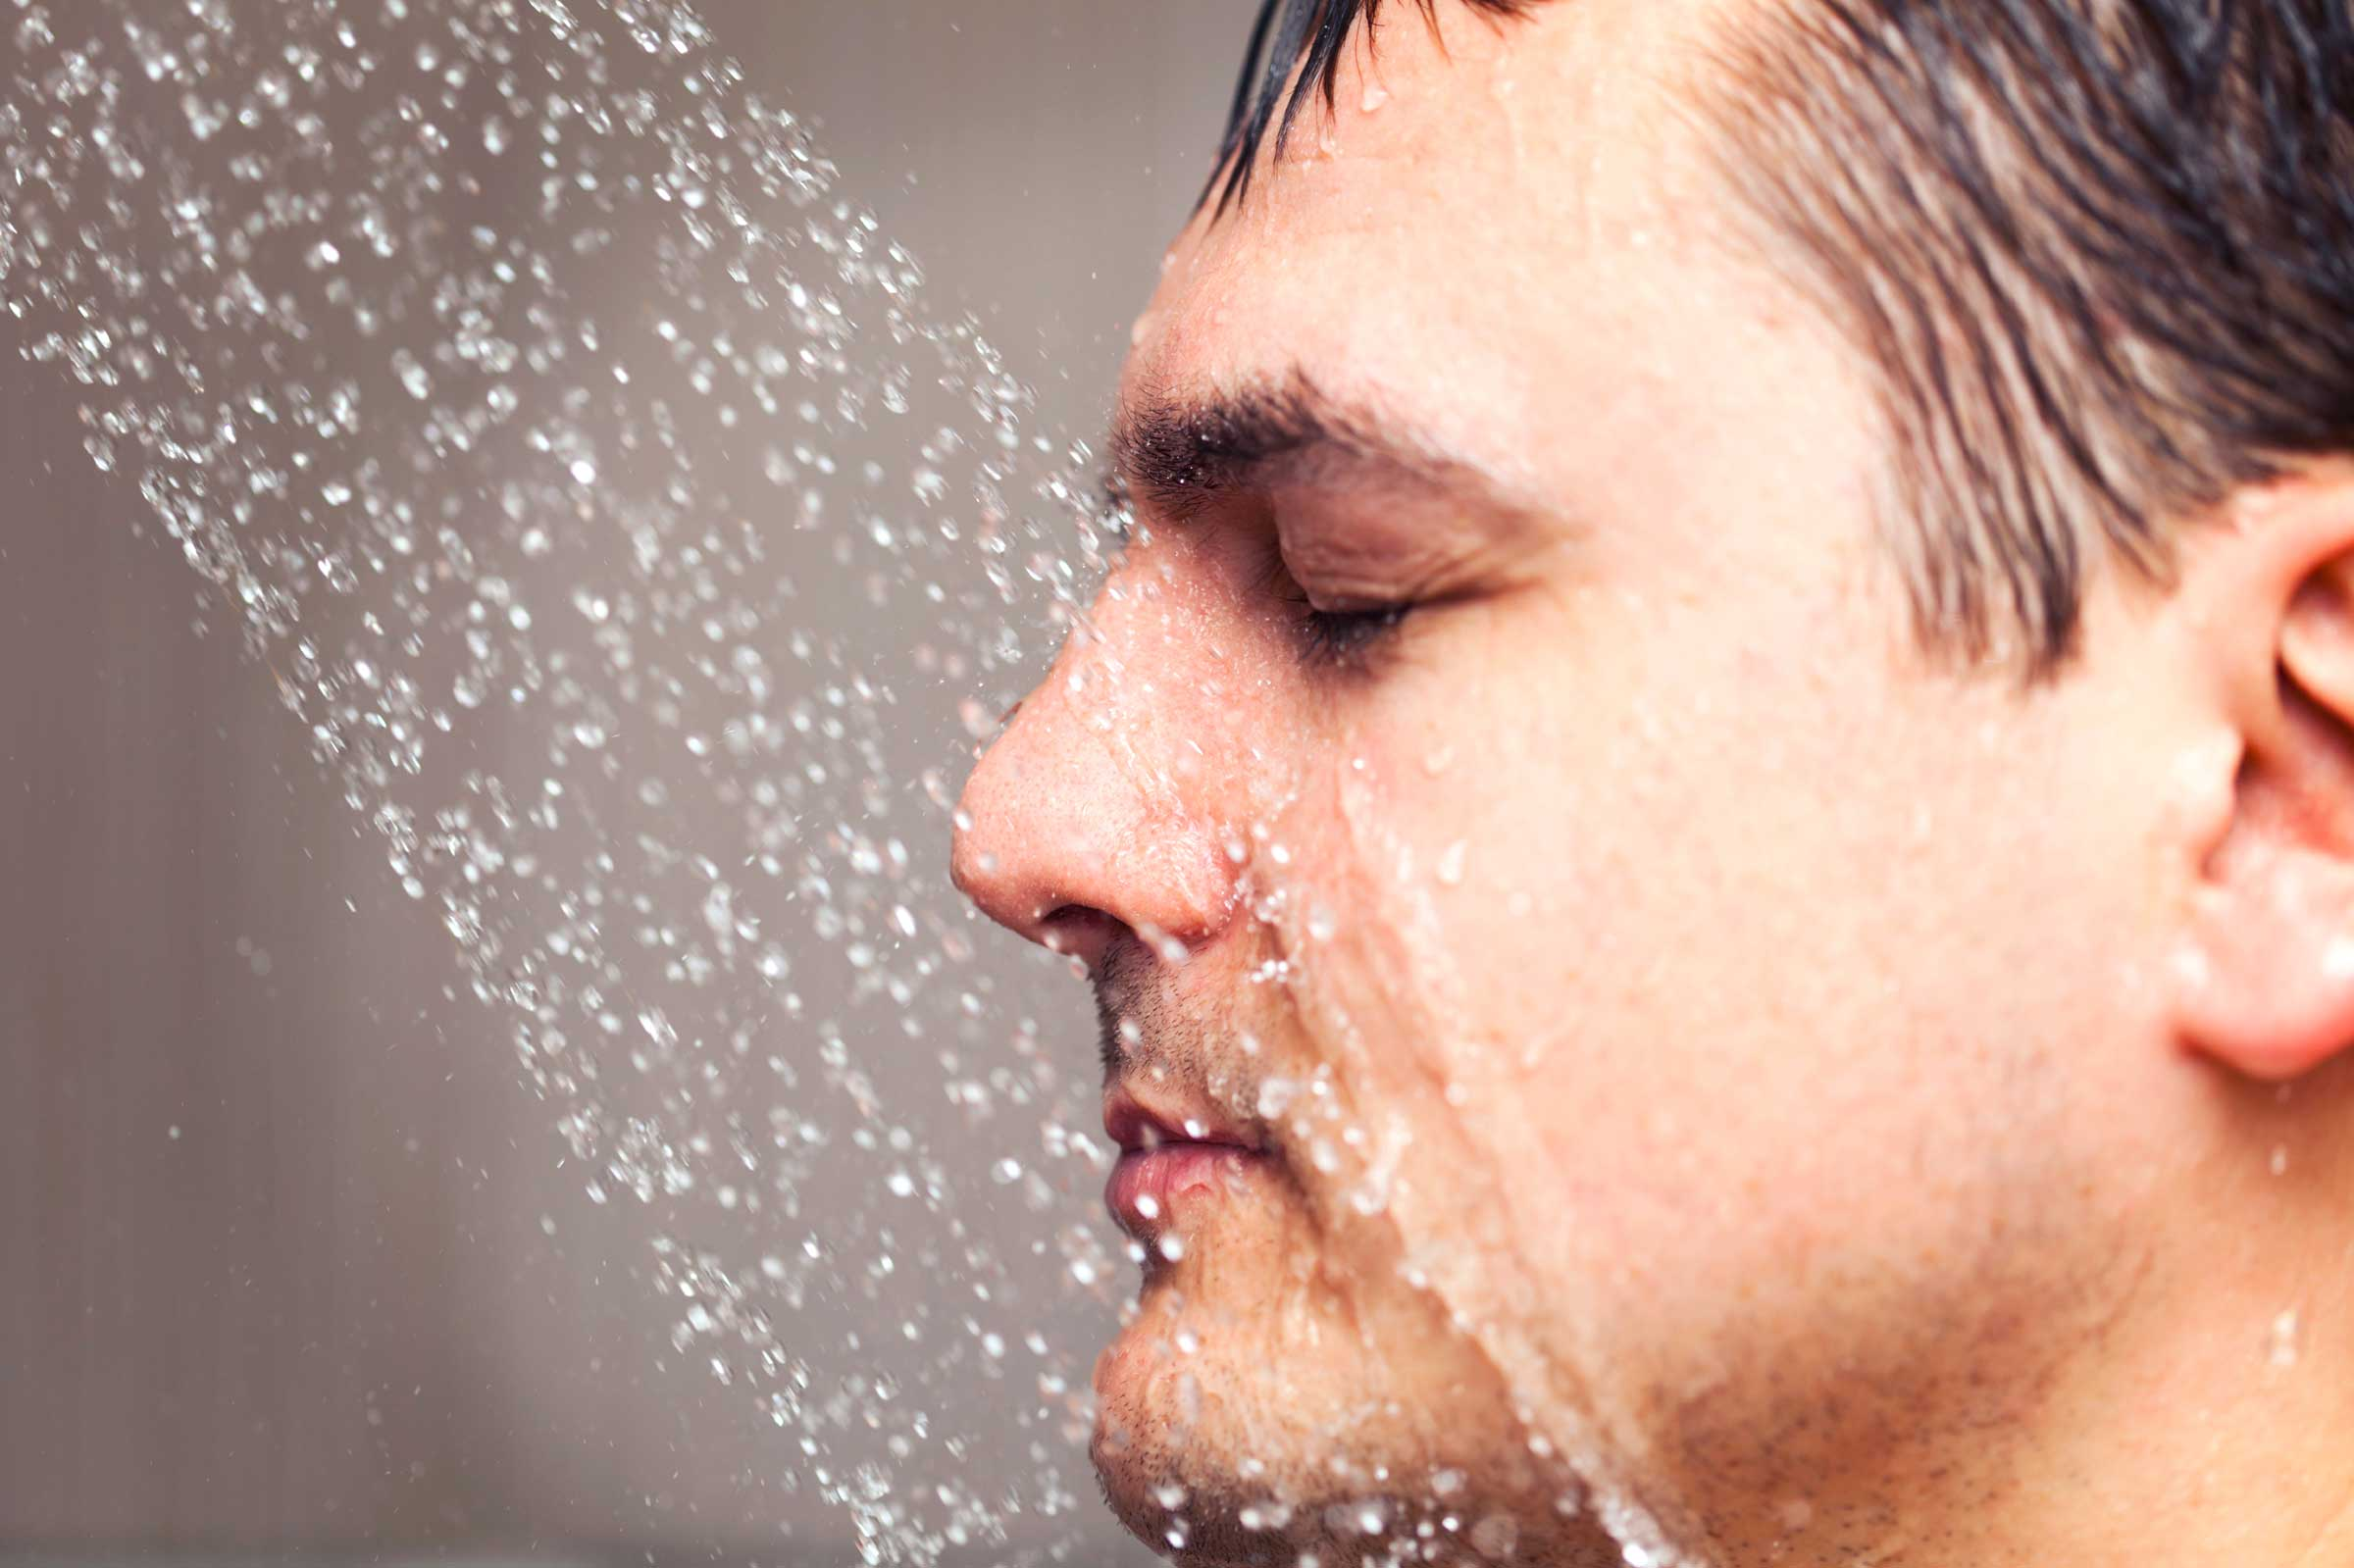 The first body part you wash in the shower can say a lot about your personality